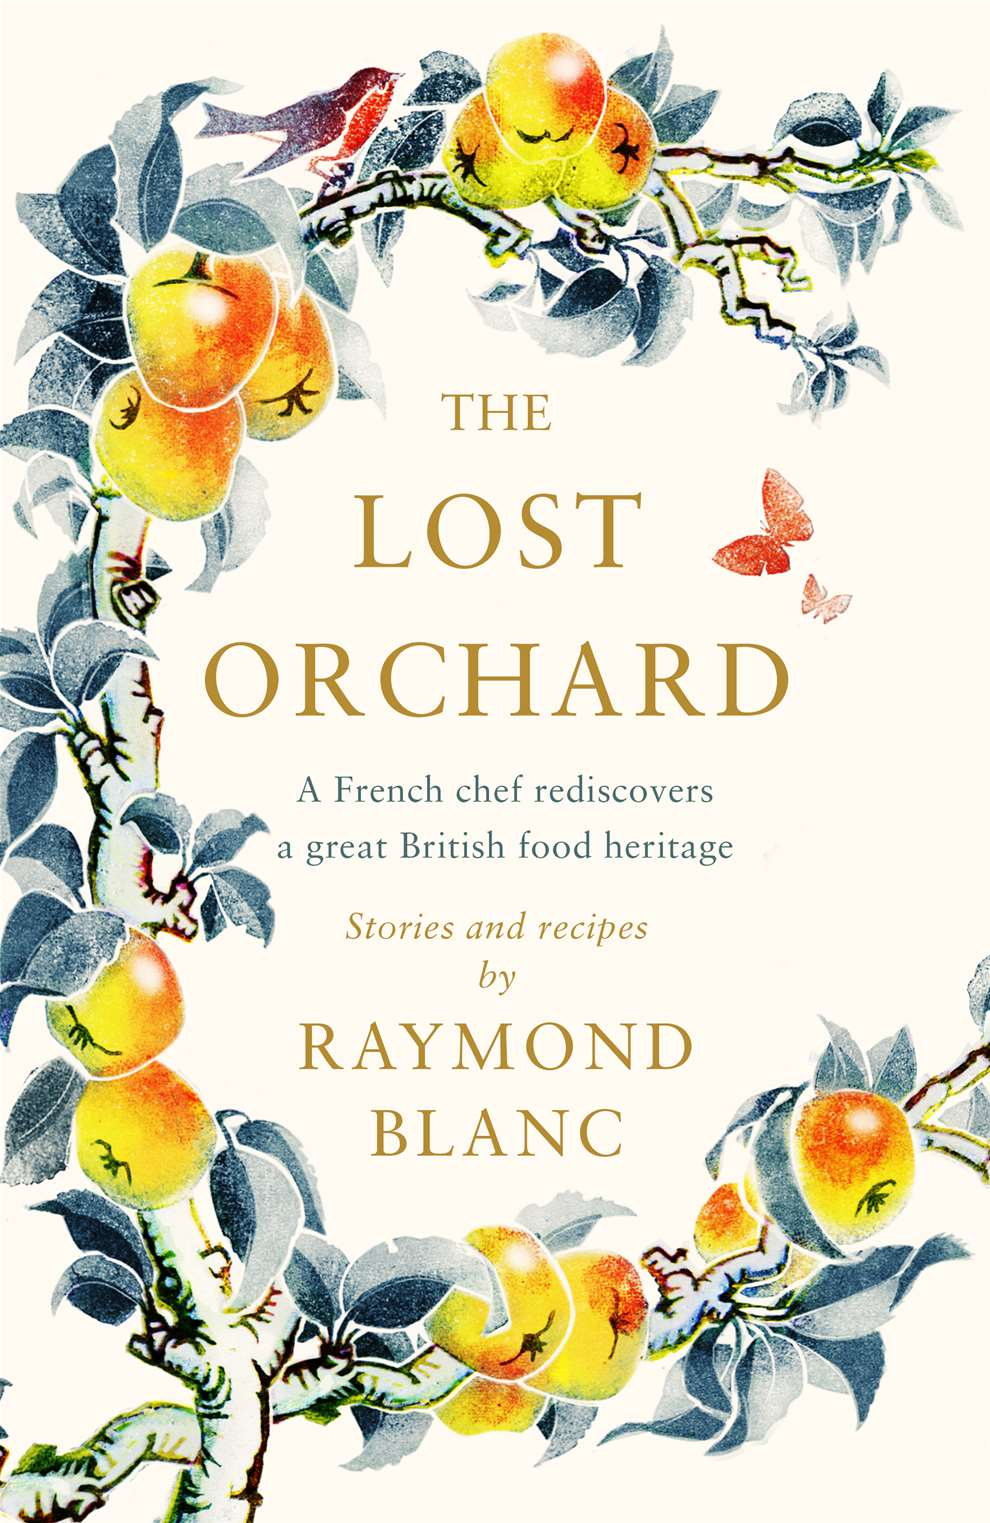 Clare Melinsky, Botanical book cover for Raymond Blanc's 'The Lost Orchard'